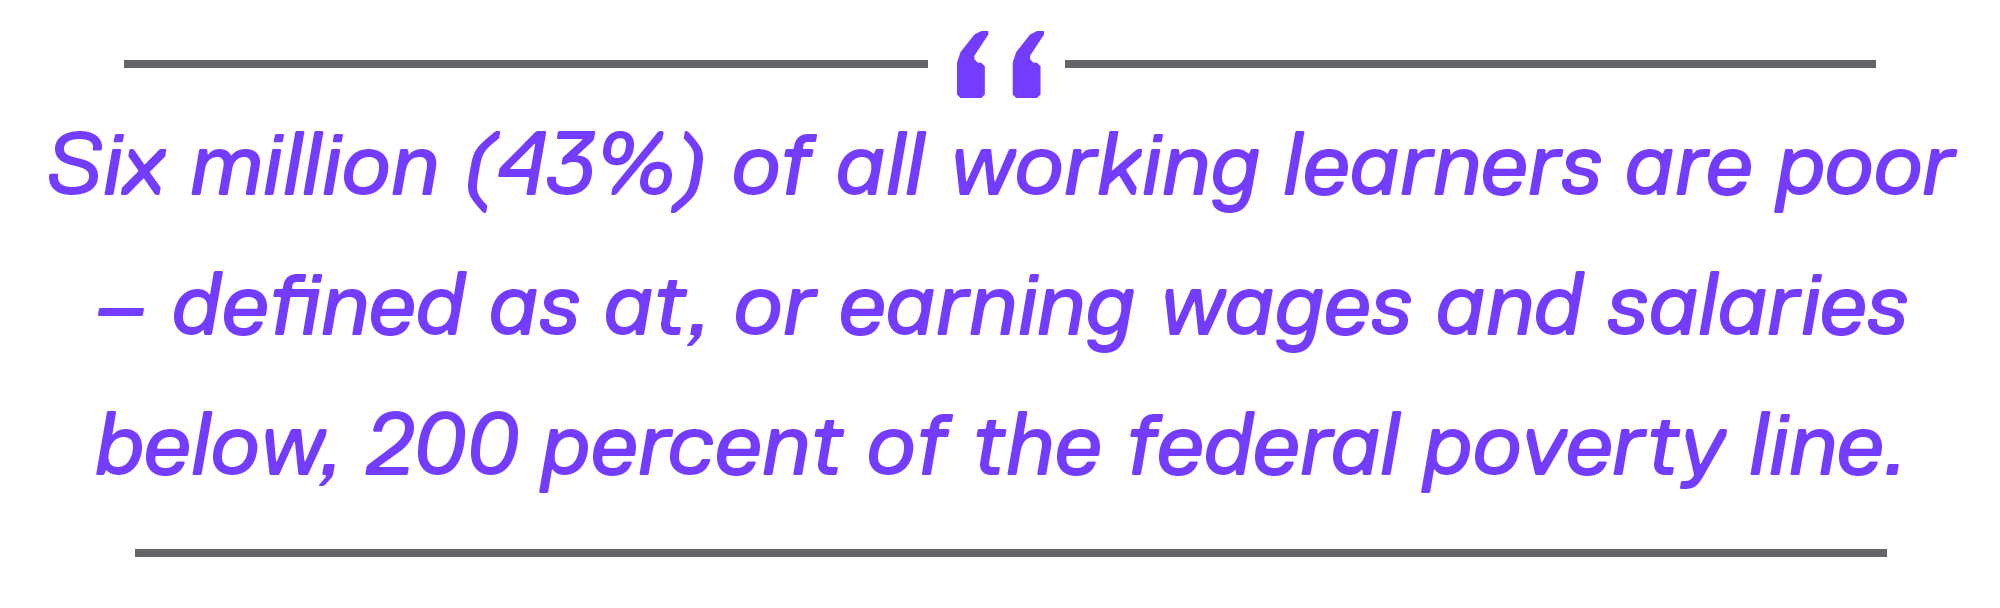 Six million (43%) of all working learners are poor – defined as at, or earning wages and salaries below, 200 percent of the federal poverty line.